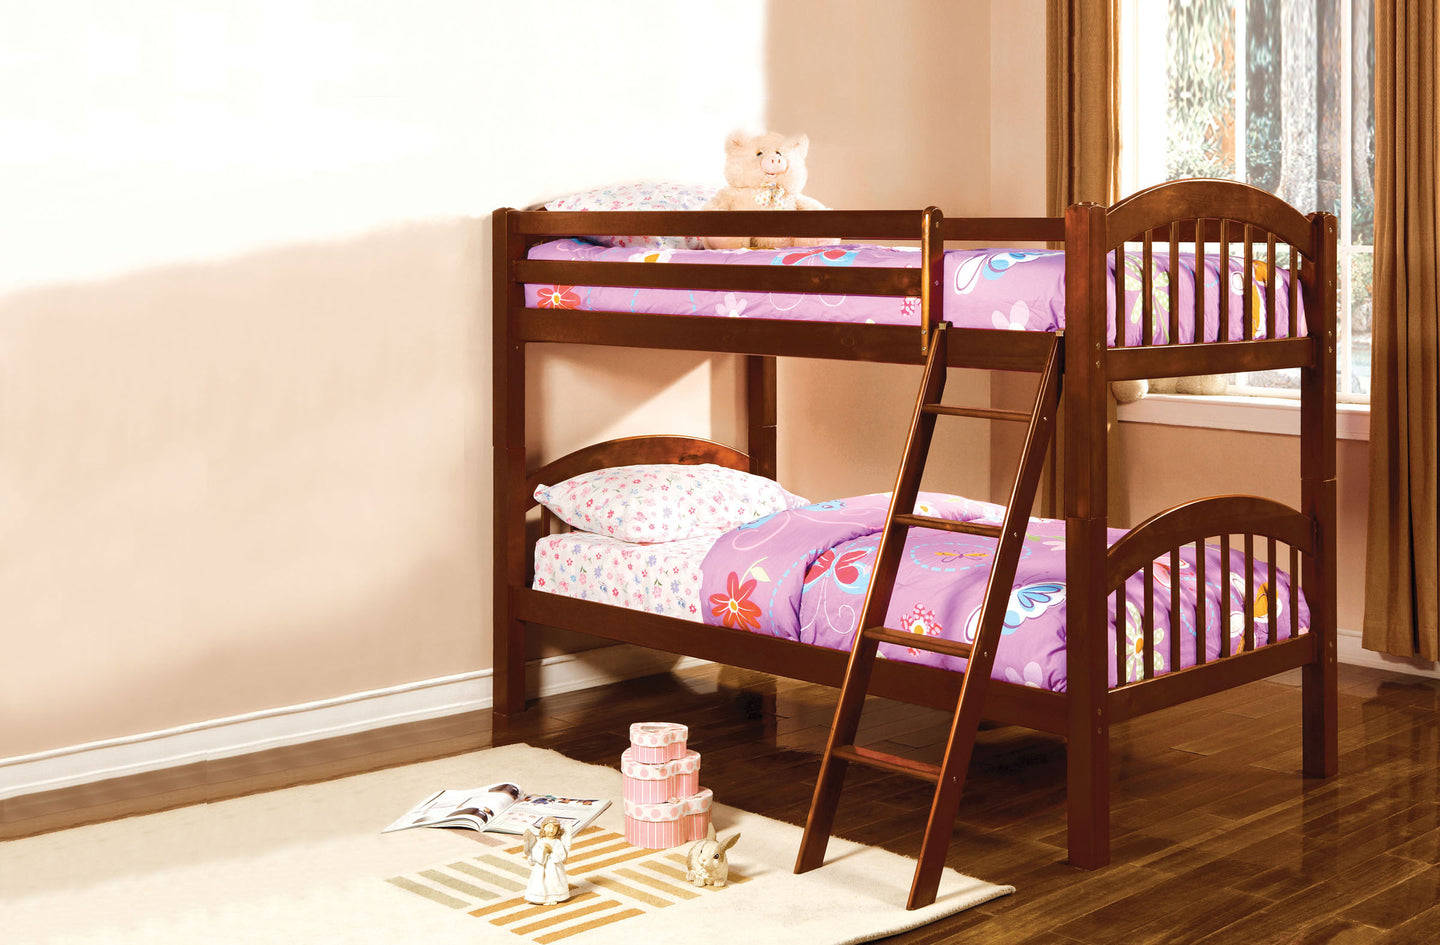 Furniture of America Coney Island Cherry Kids Twin over Twin Bunk Bed